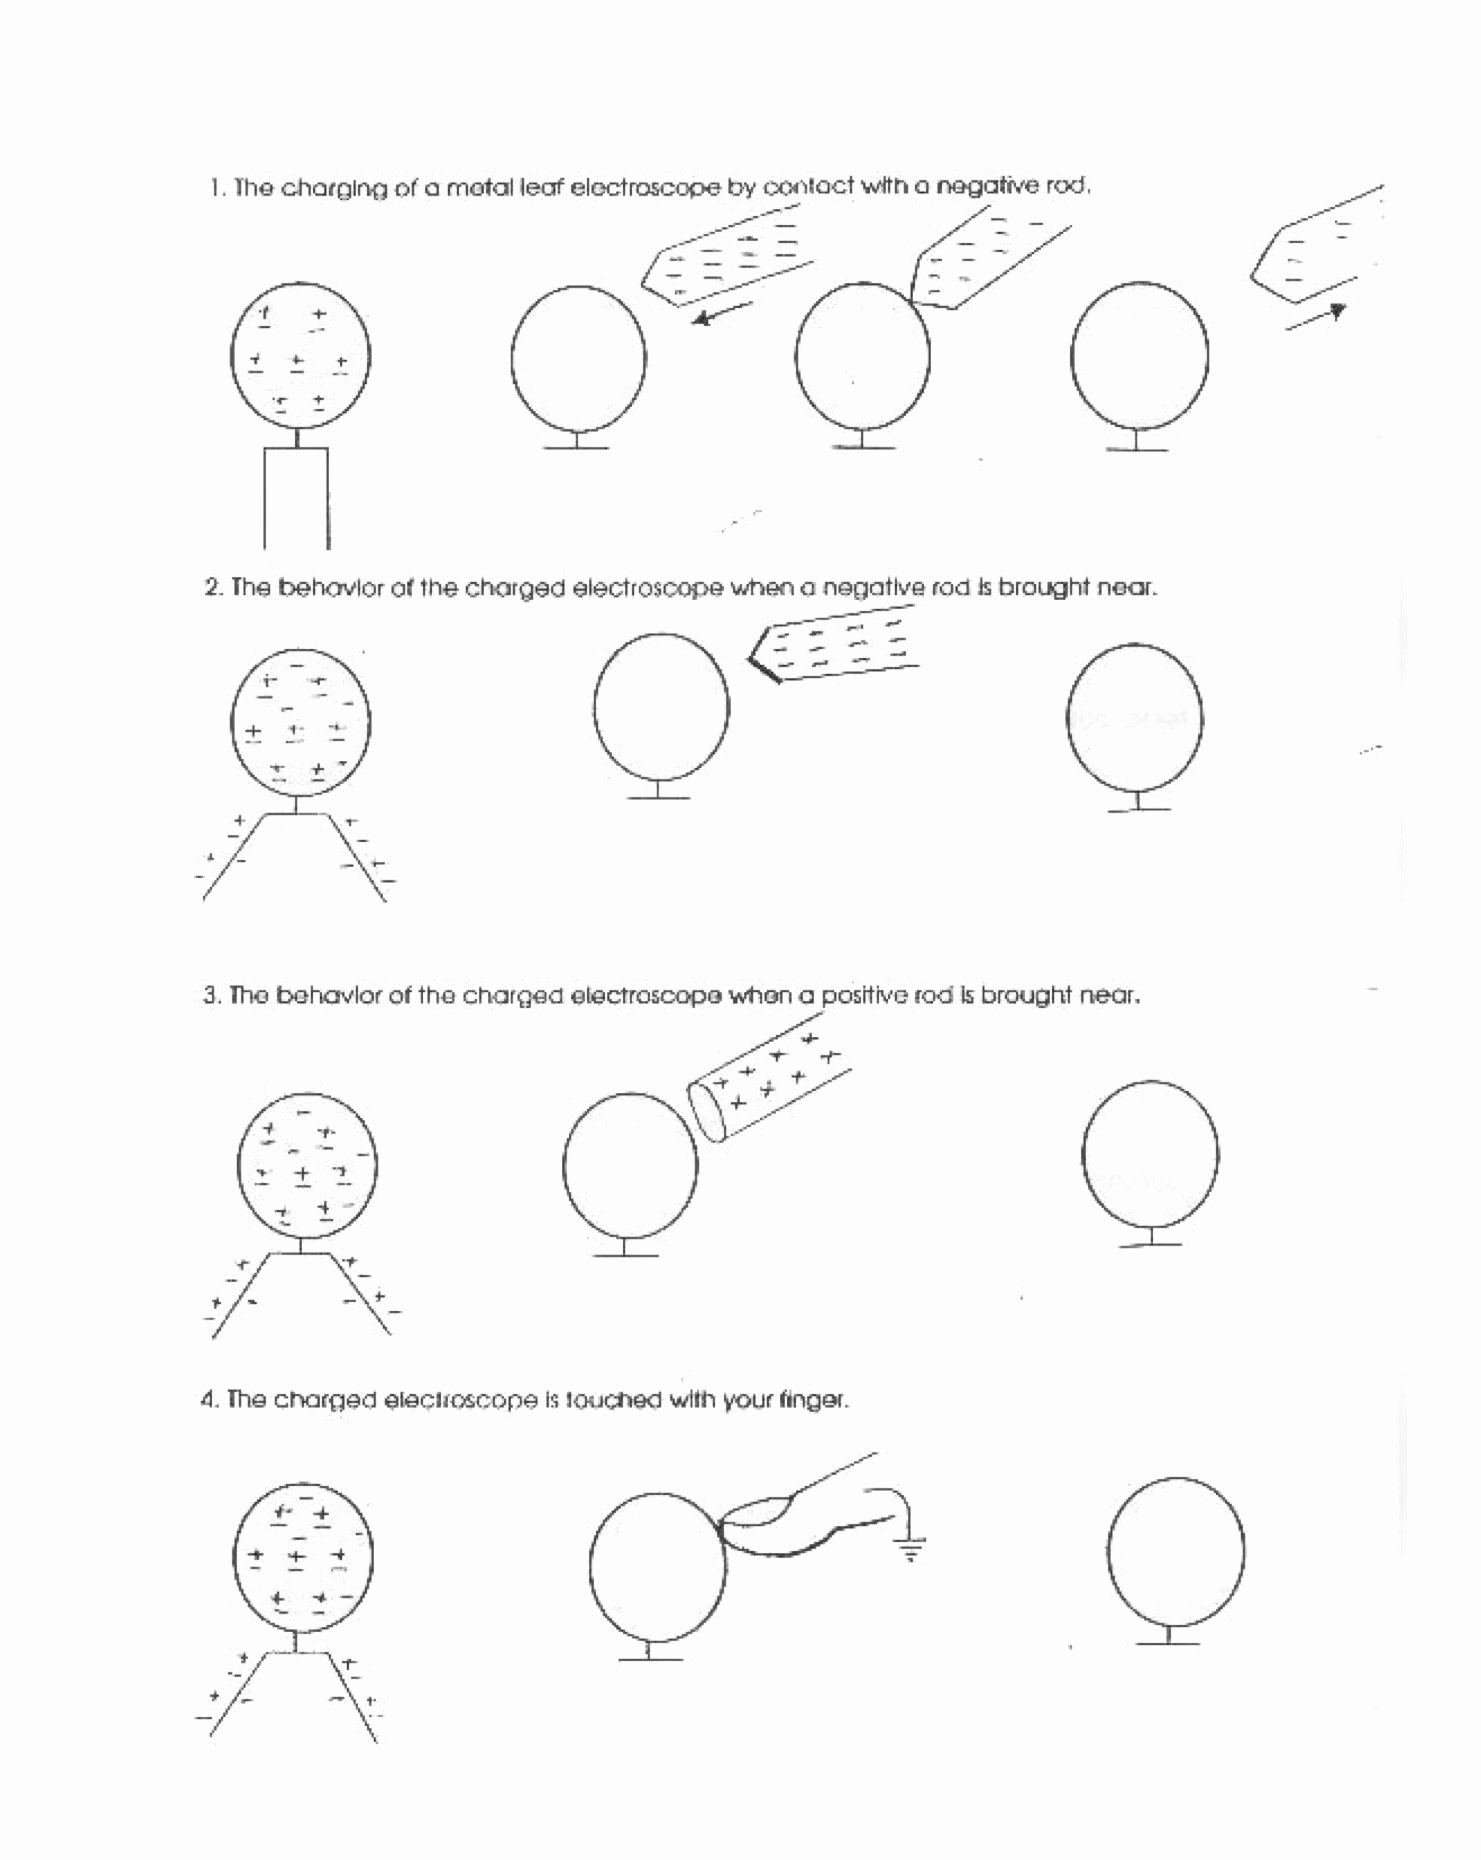 Static Electricity Worksheet Answers Inspirational Metal Leaf Electroscope Contact & Induction Worksheet